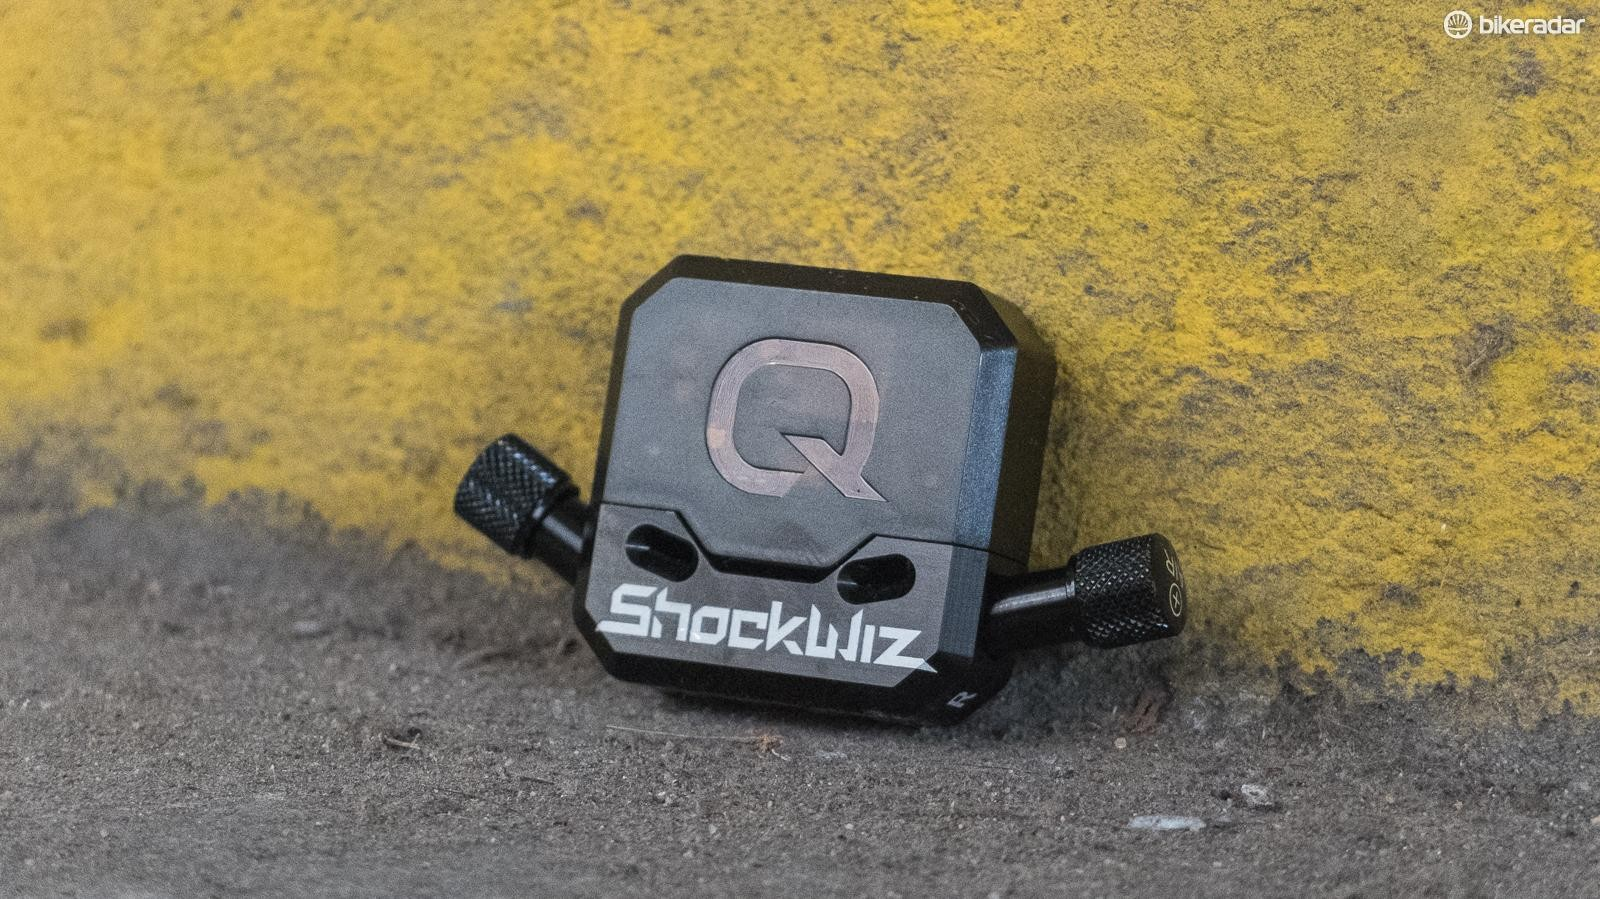 Get your suspension dialled to perfection with the Quarq Shockwiz